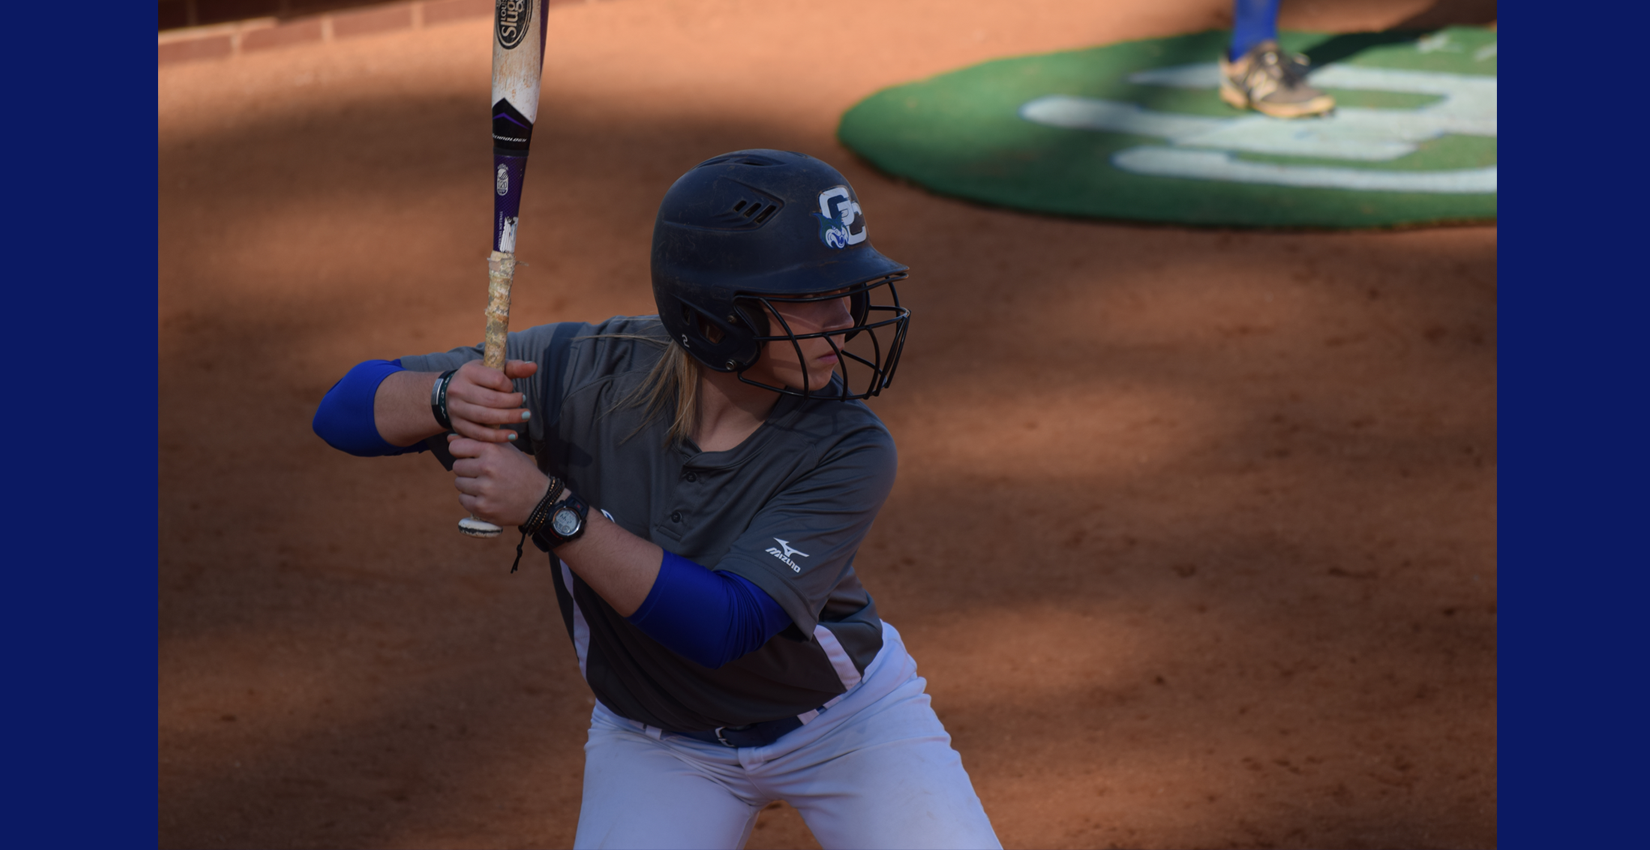 GC Softball Out-Dueled by Eckerd and No. 12 St Mary's in Saturday Doubleheader